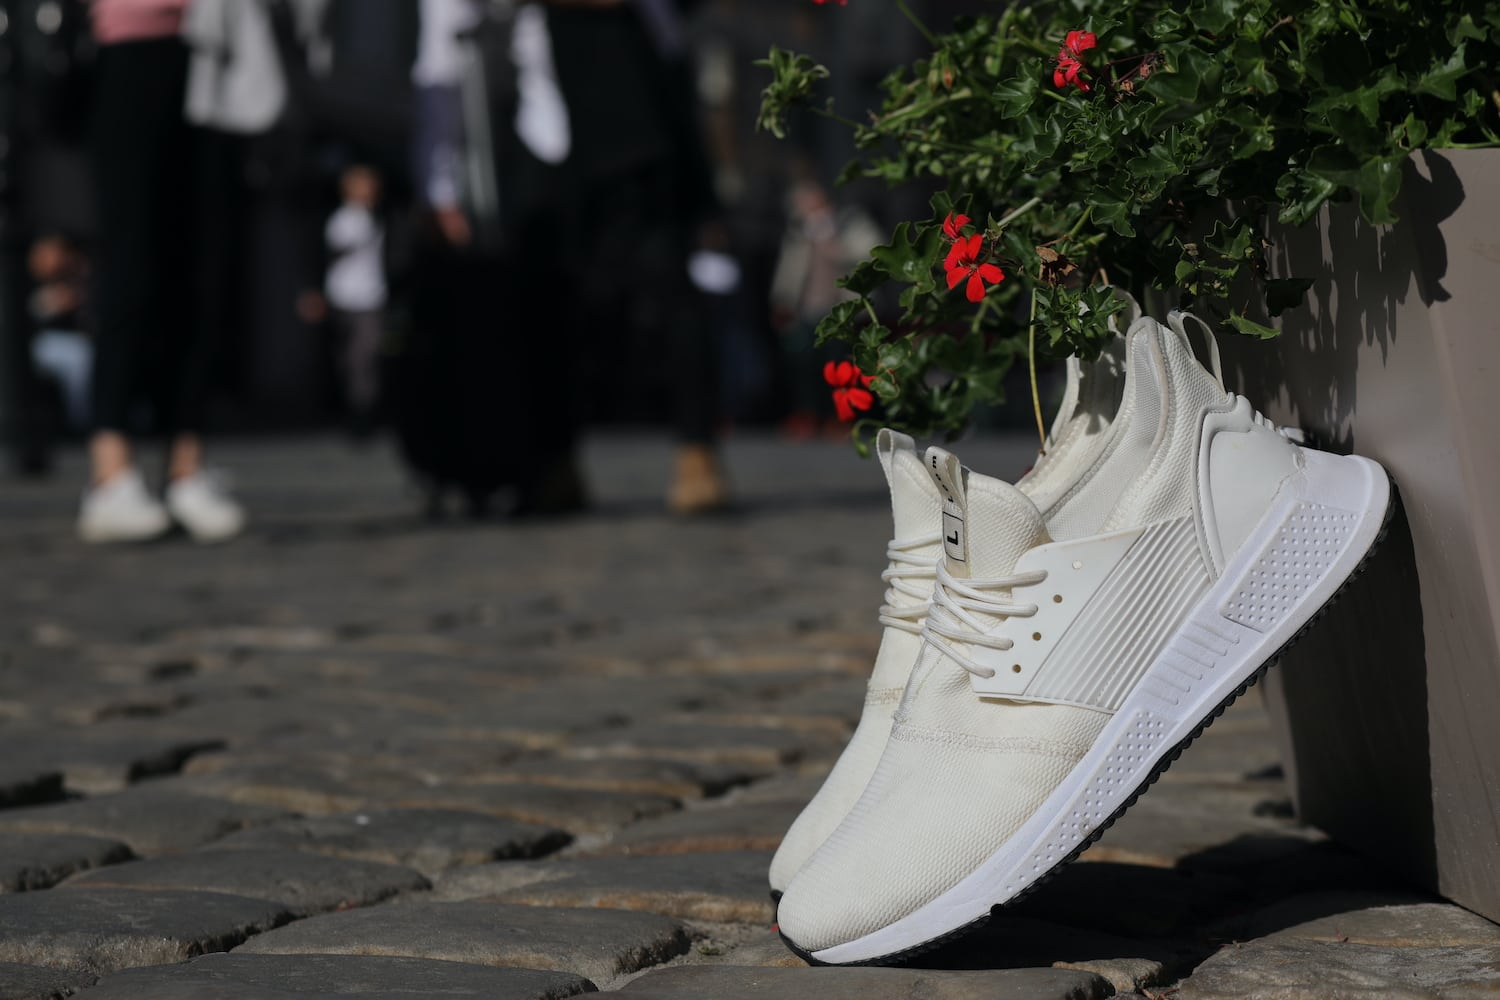 Loom white trainers propped up